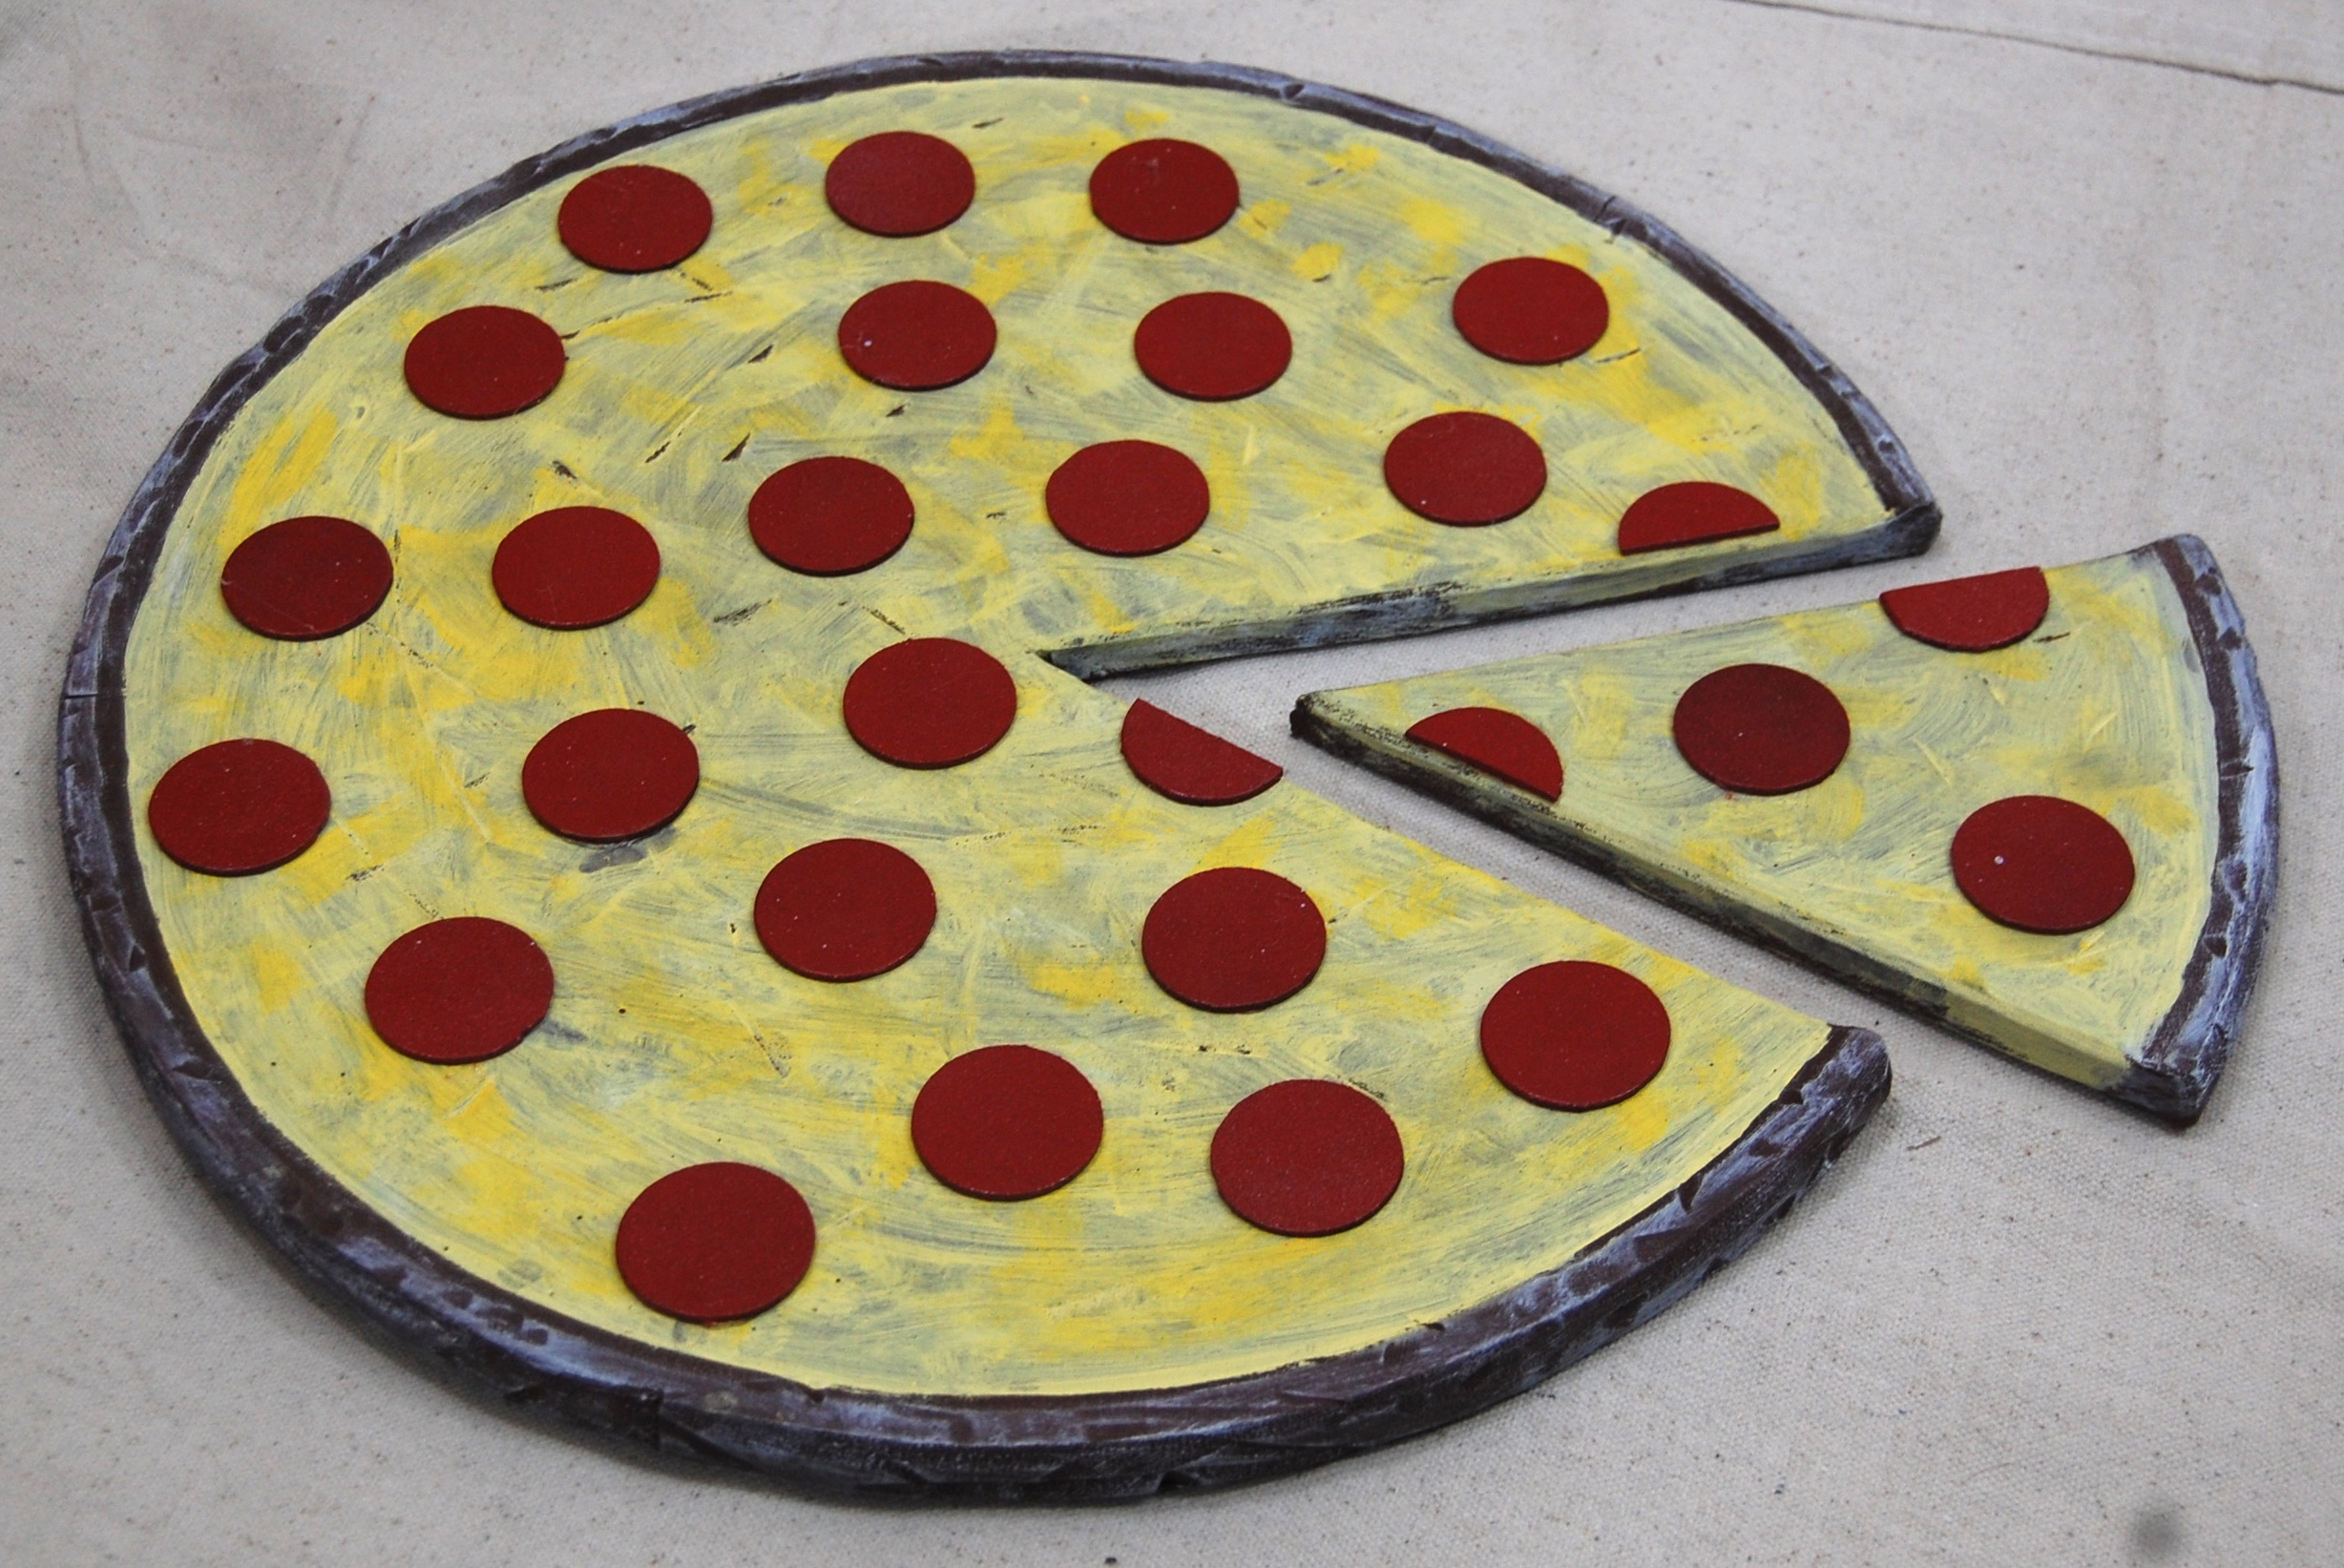 Picture of The Pizza